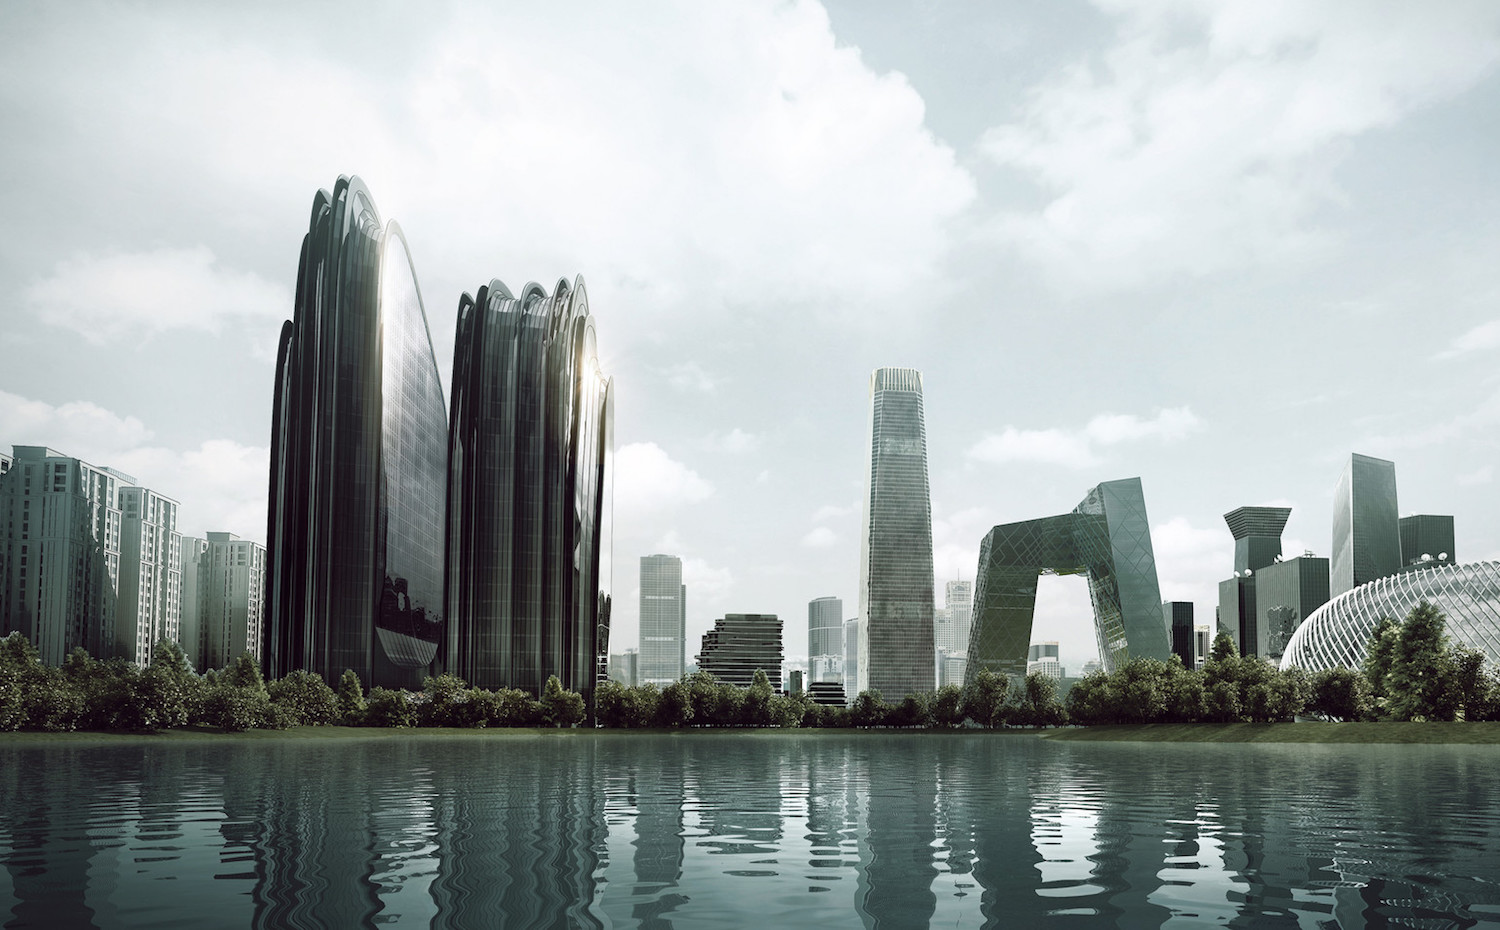 2. MAD 12003 Chaoyang Park Plaza i 02 overview with city context. [03] Chaoyang Park Plaza (Pekín), por MAD Arquitectos